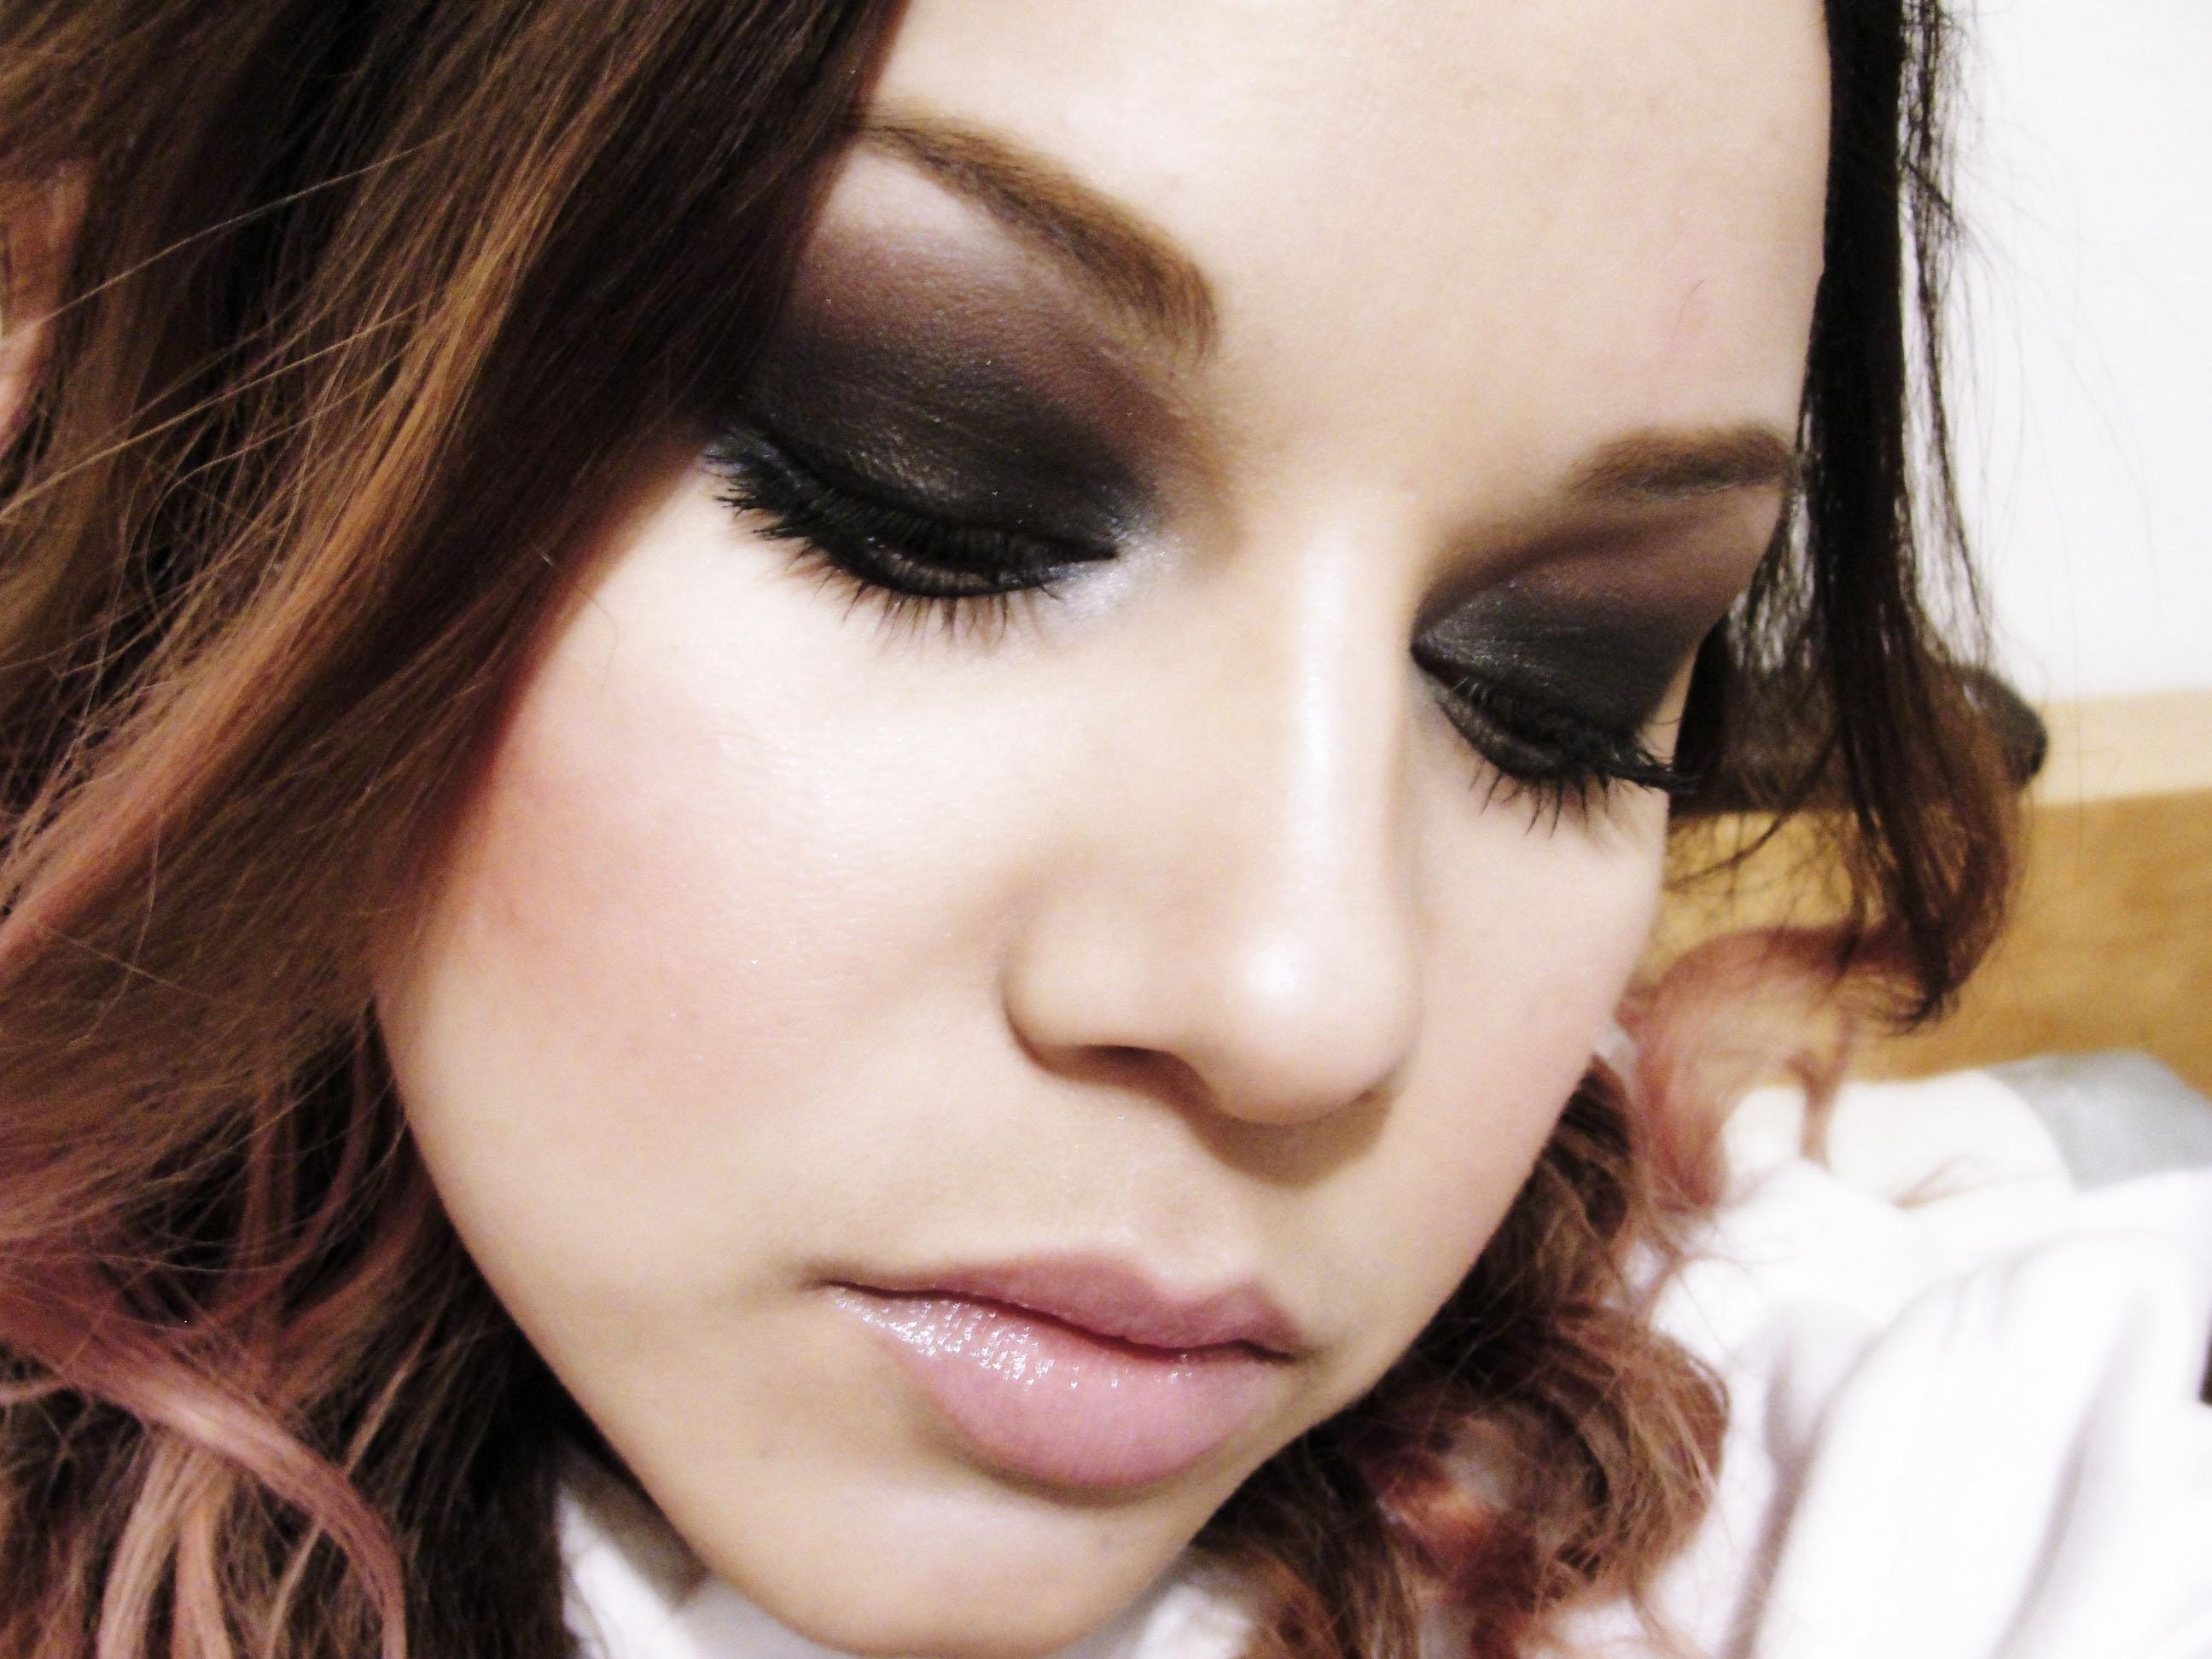 SUBTLY DAYTIME AND SULTRY NIGHTTIME EYE MAKE UP - image 7 - student project